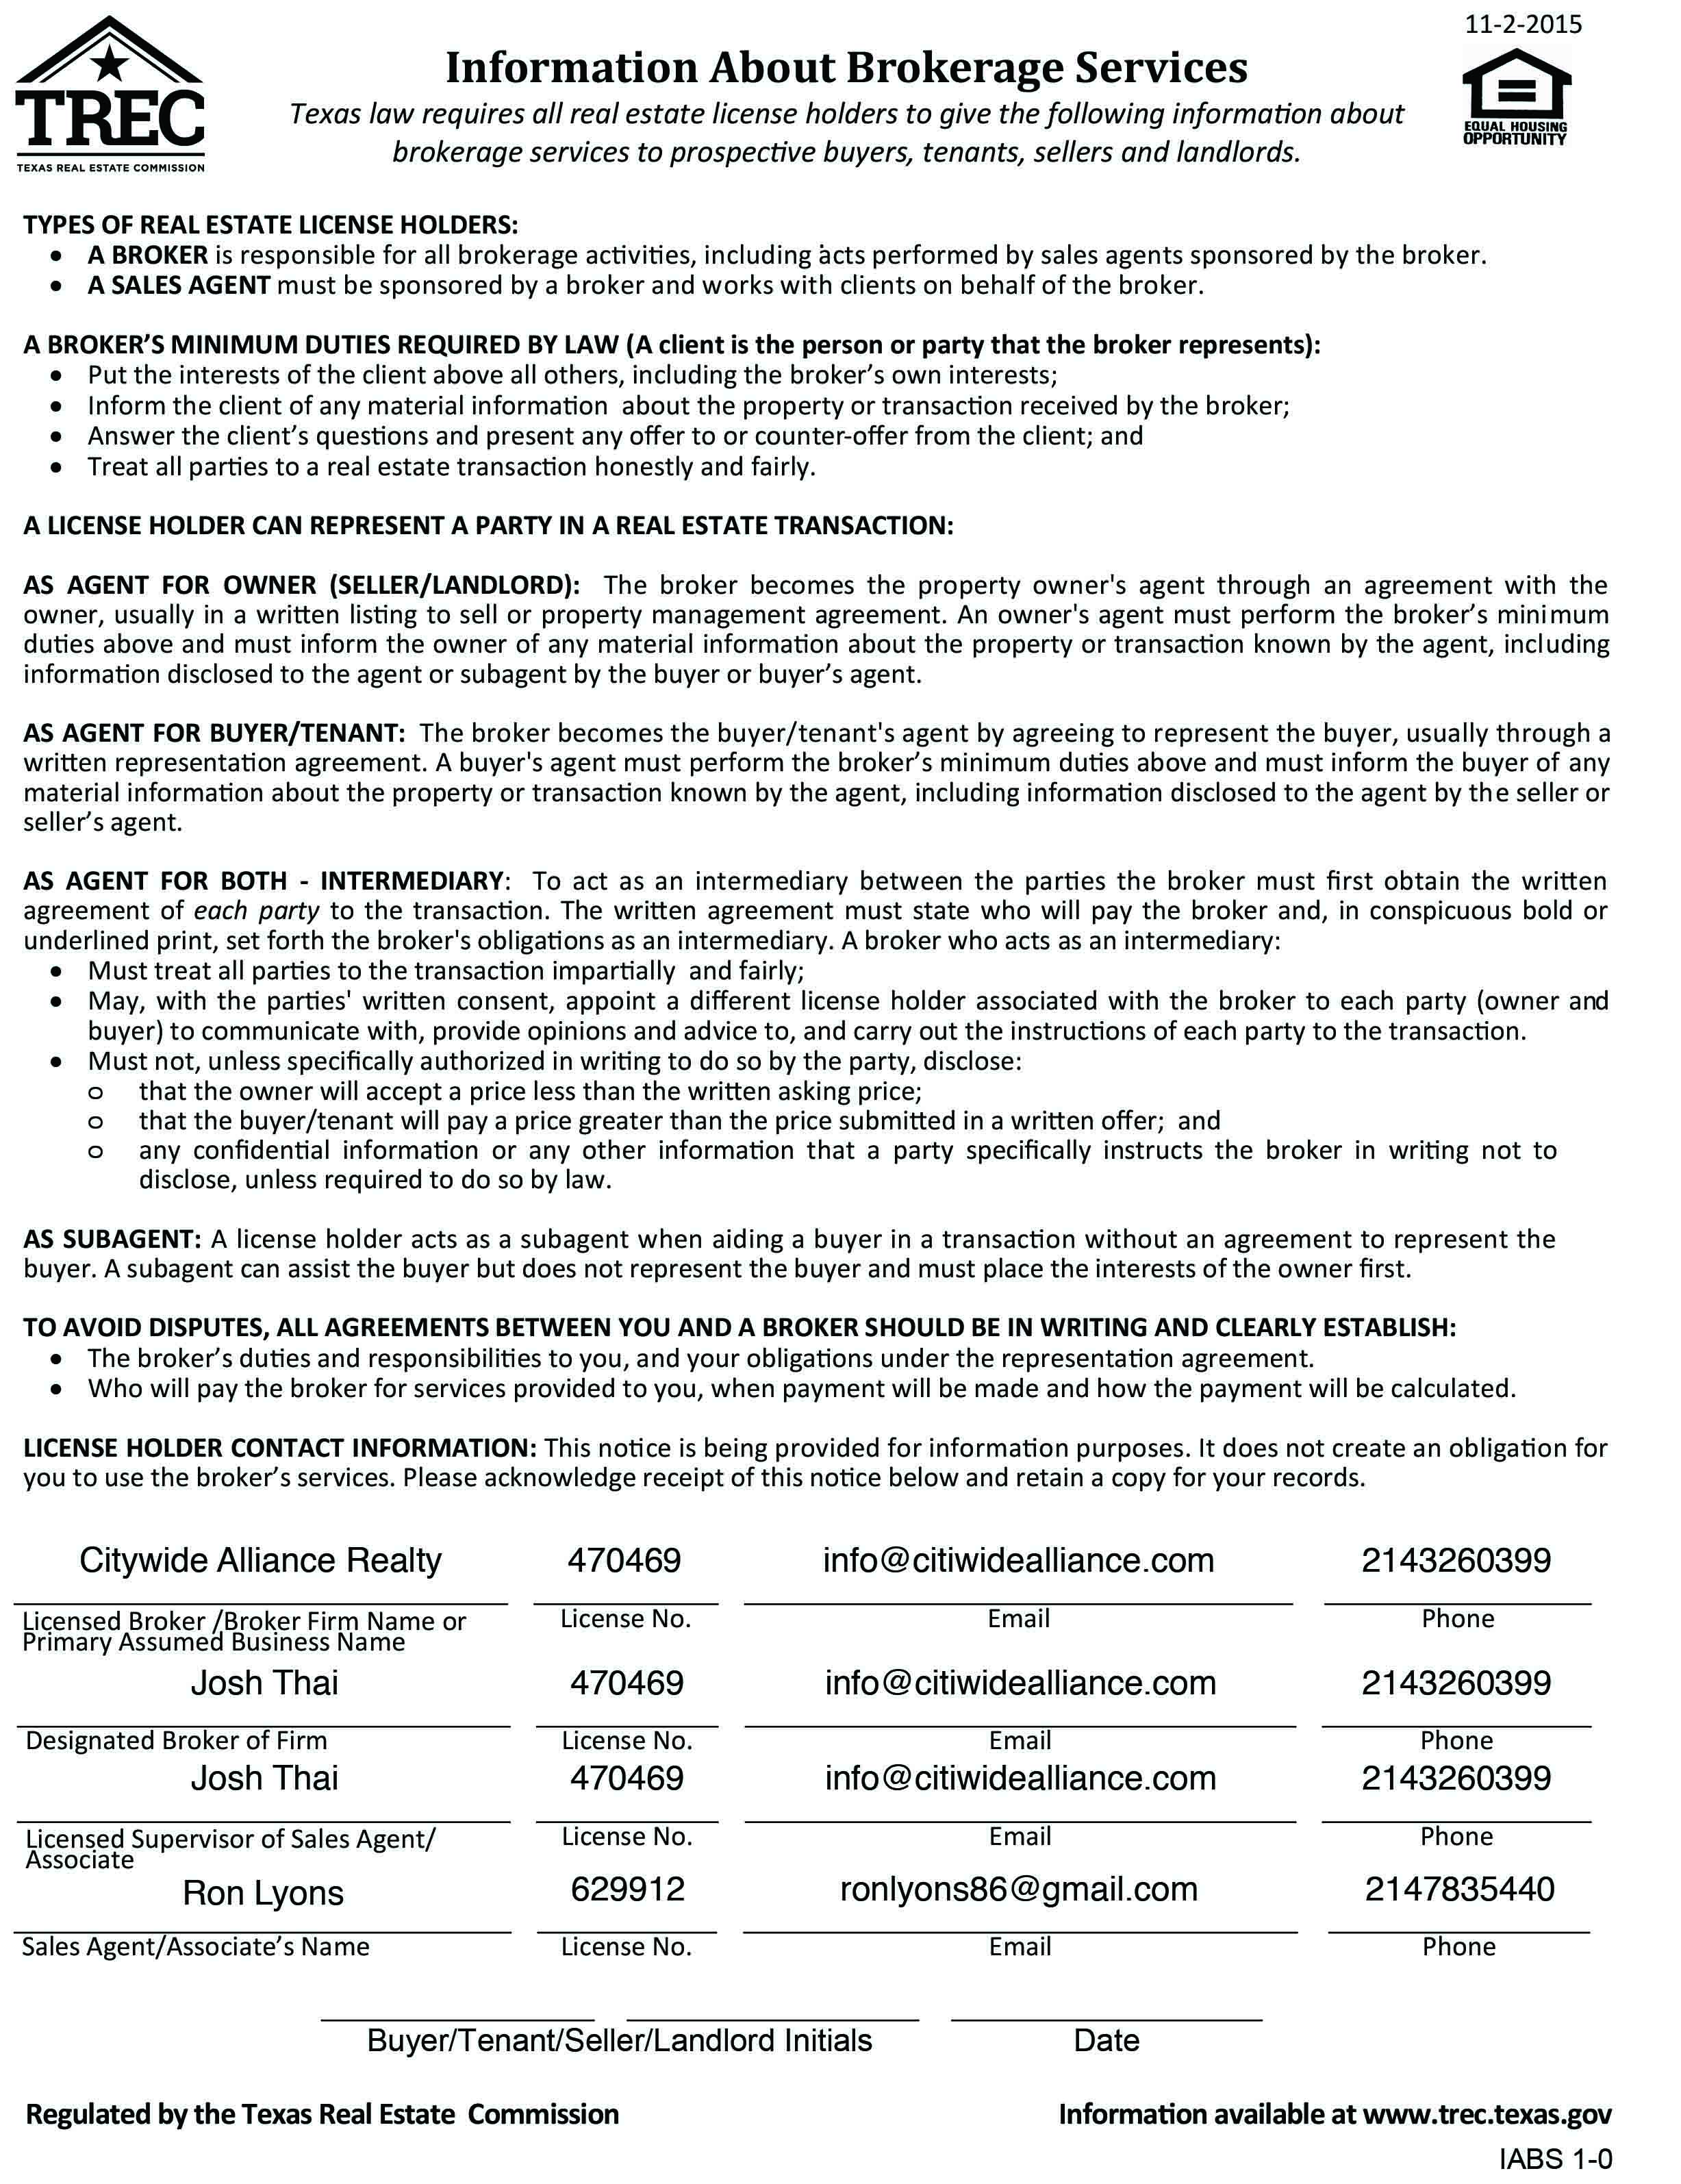 Information About Brokerage Services (Click to enlarge)